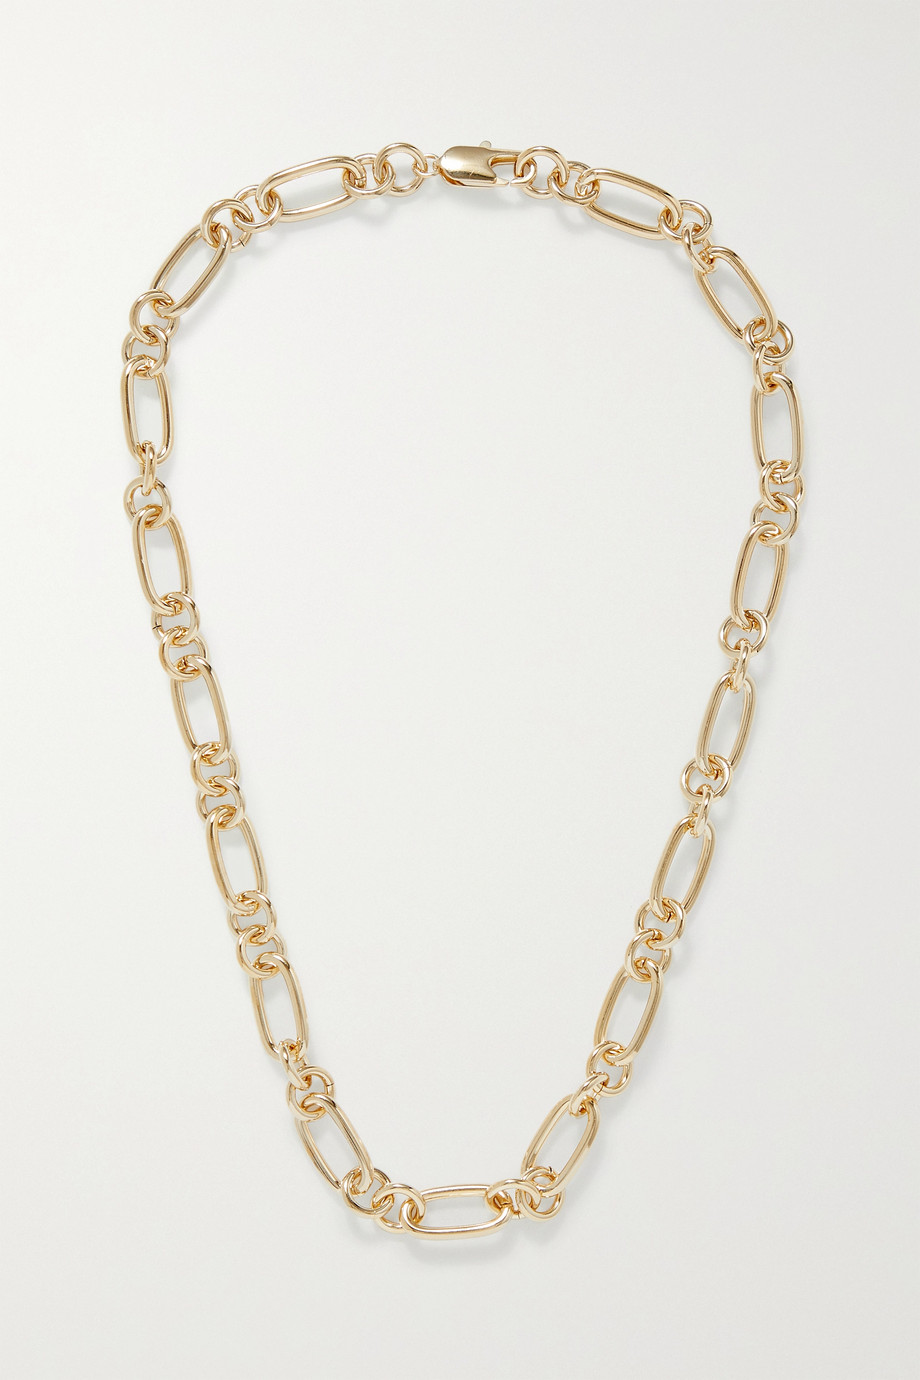 Laura Lombardi Rafaella gold-plated necklace